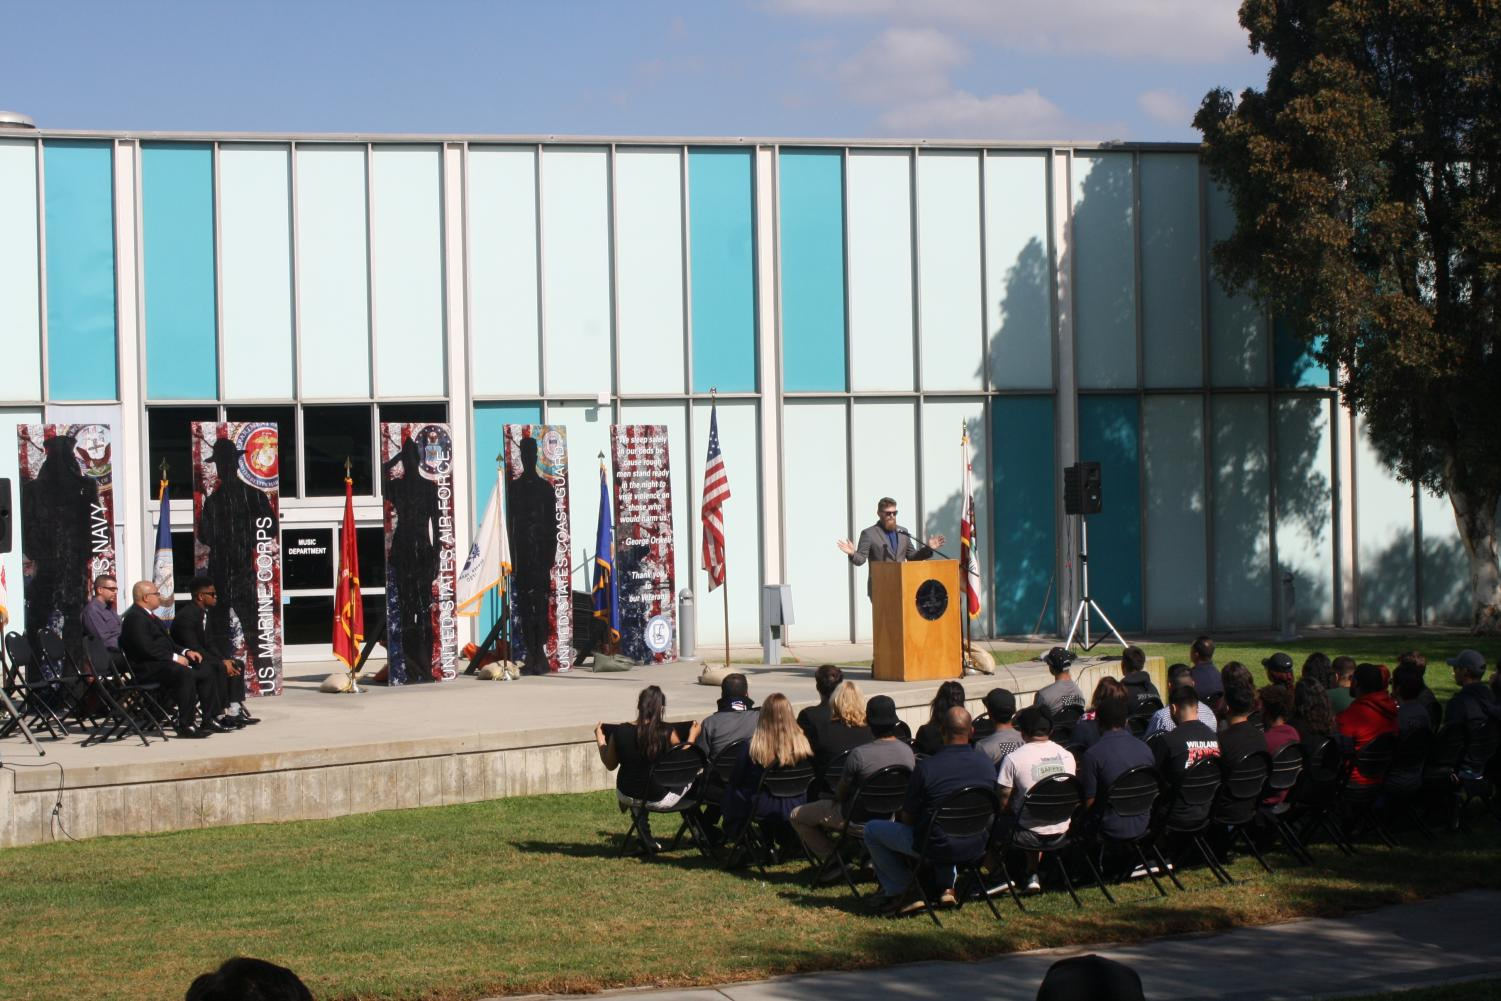 Veteran and Psychology Major at CSULA Brandon Cholvers spoke to students about the meaning of Veterans Day.The event was held on Nov. 9 in the amphitheater. Photo credit: Jocelyn Torralba